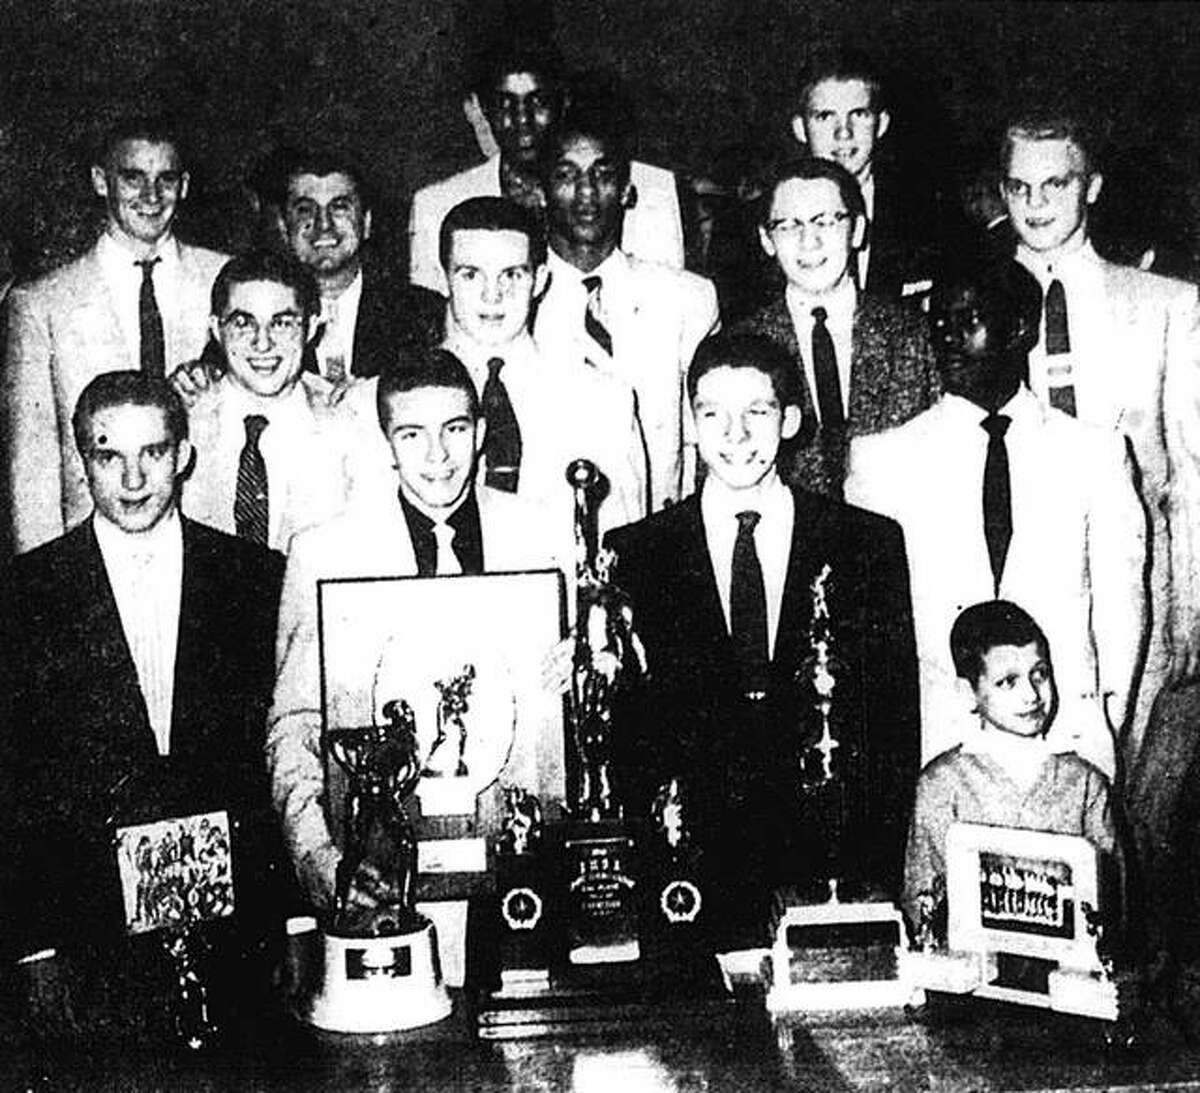 The Edwardsville basketball team, which capped the 1955-56 season with a second-place finish in the state tournament, poses for a photo. Front row, from left to right, Gordon Mallory, Bryan Madison, team manager Wade Buckles and Billy Lucco, the coach's son. Second row, from left, Lee May, Richard Pulliam and Bobby White. Third row, from left, Jimmy Chandler, coach Joe Lucco, Mannie Jackson, team manager Royce Dettmer and Buzz Shaw. Govoner Vaughn, left, and Harold Patton are in the top row.